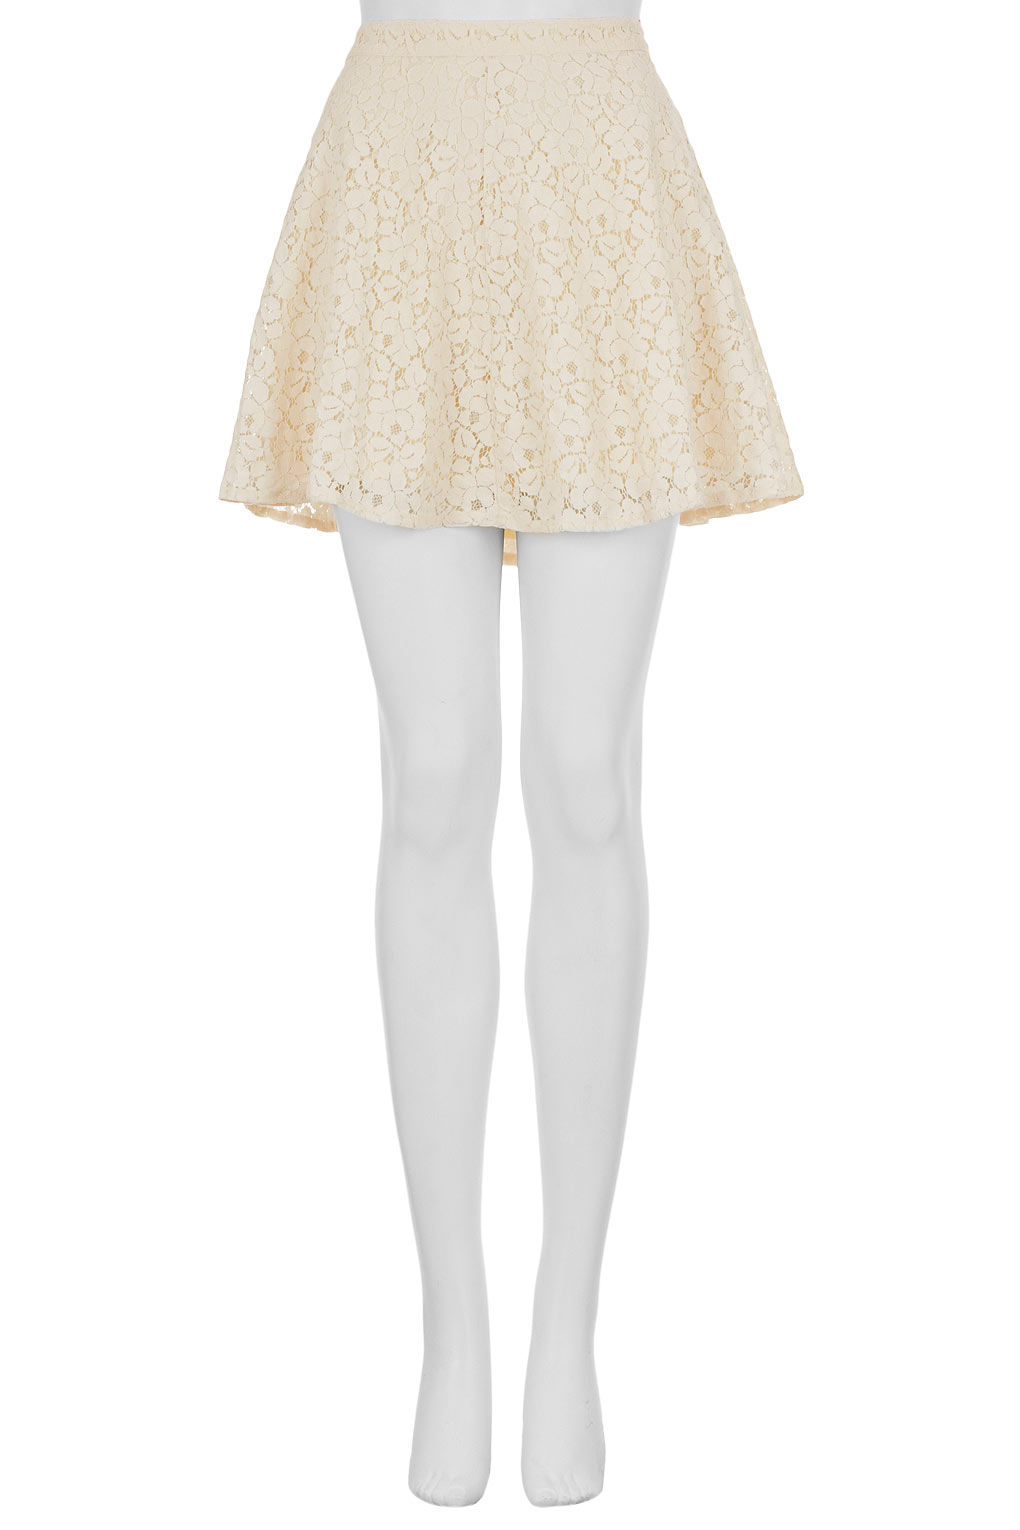 e16c4ad30 TOPSHOP Cream Lace Skater Skirt in Natural - Lyst